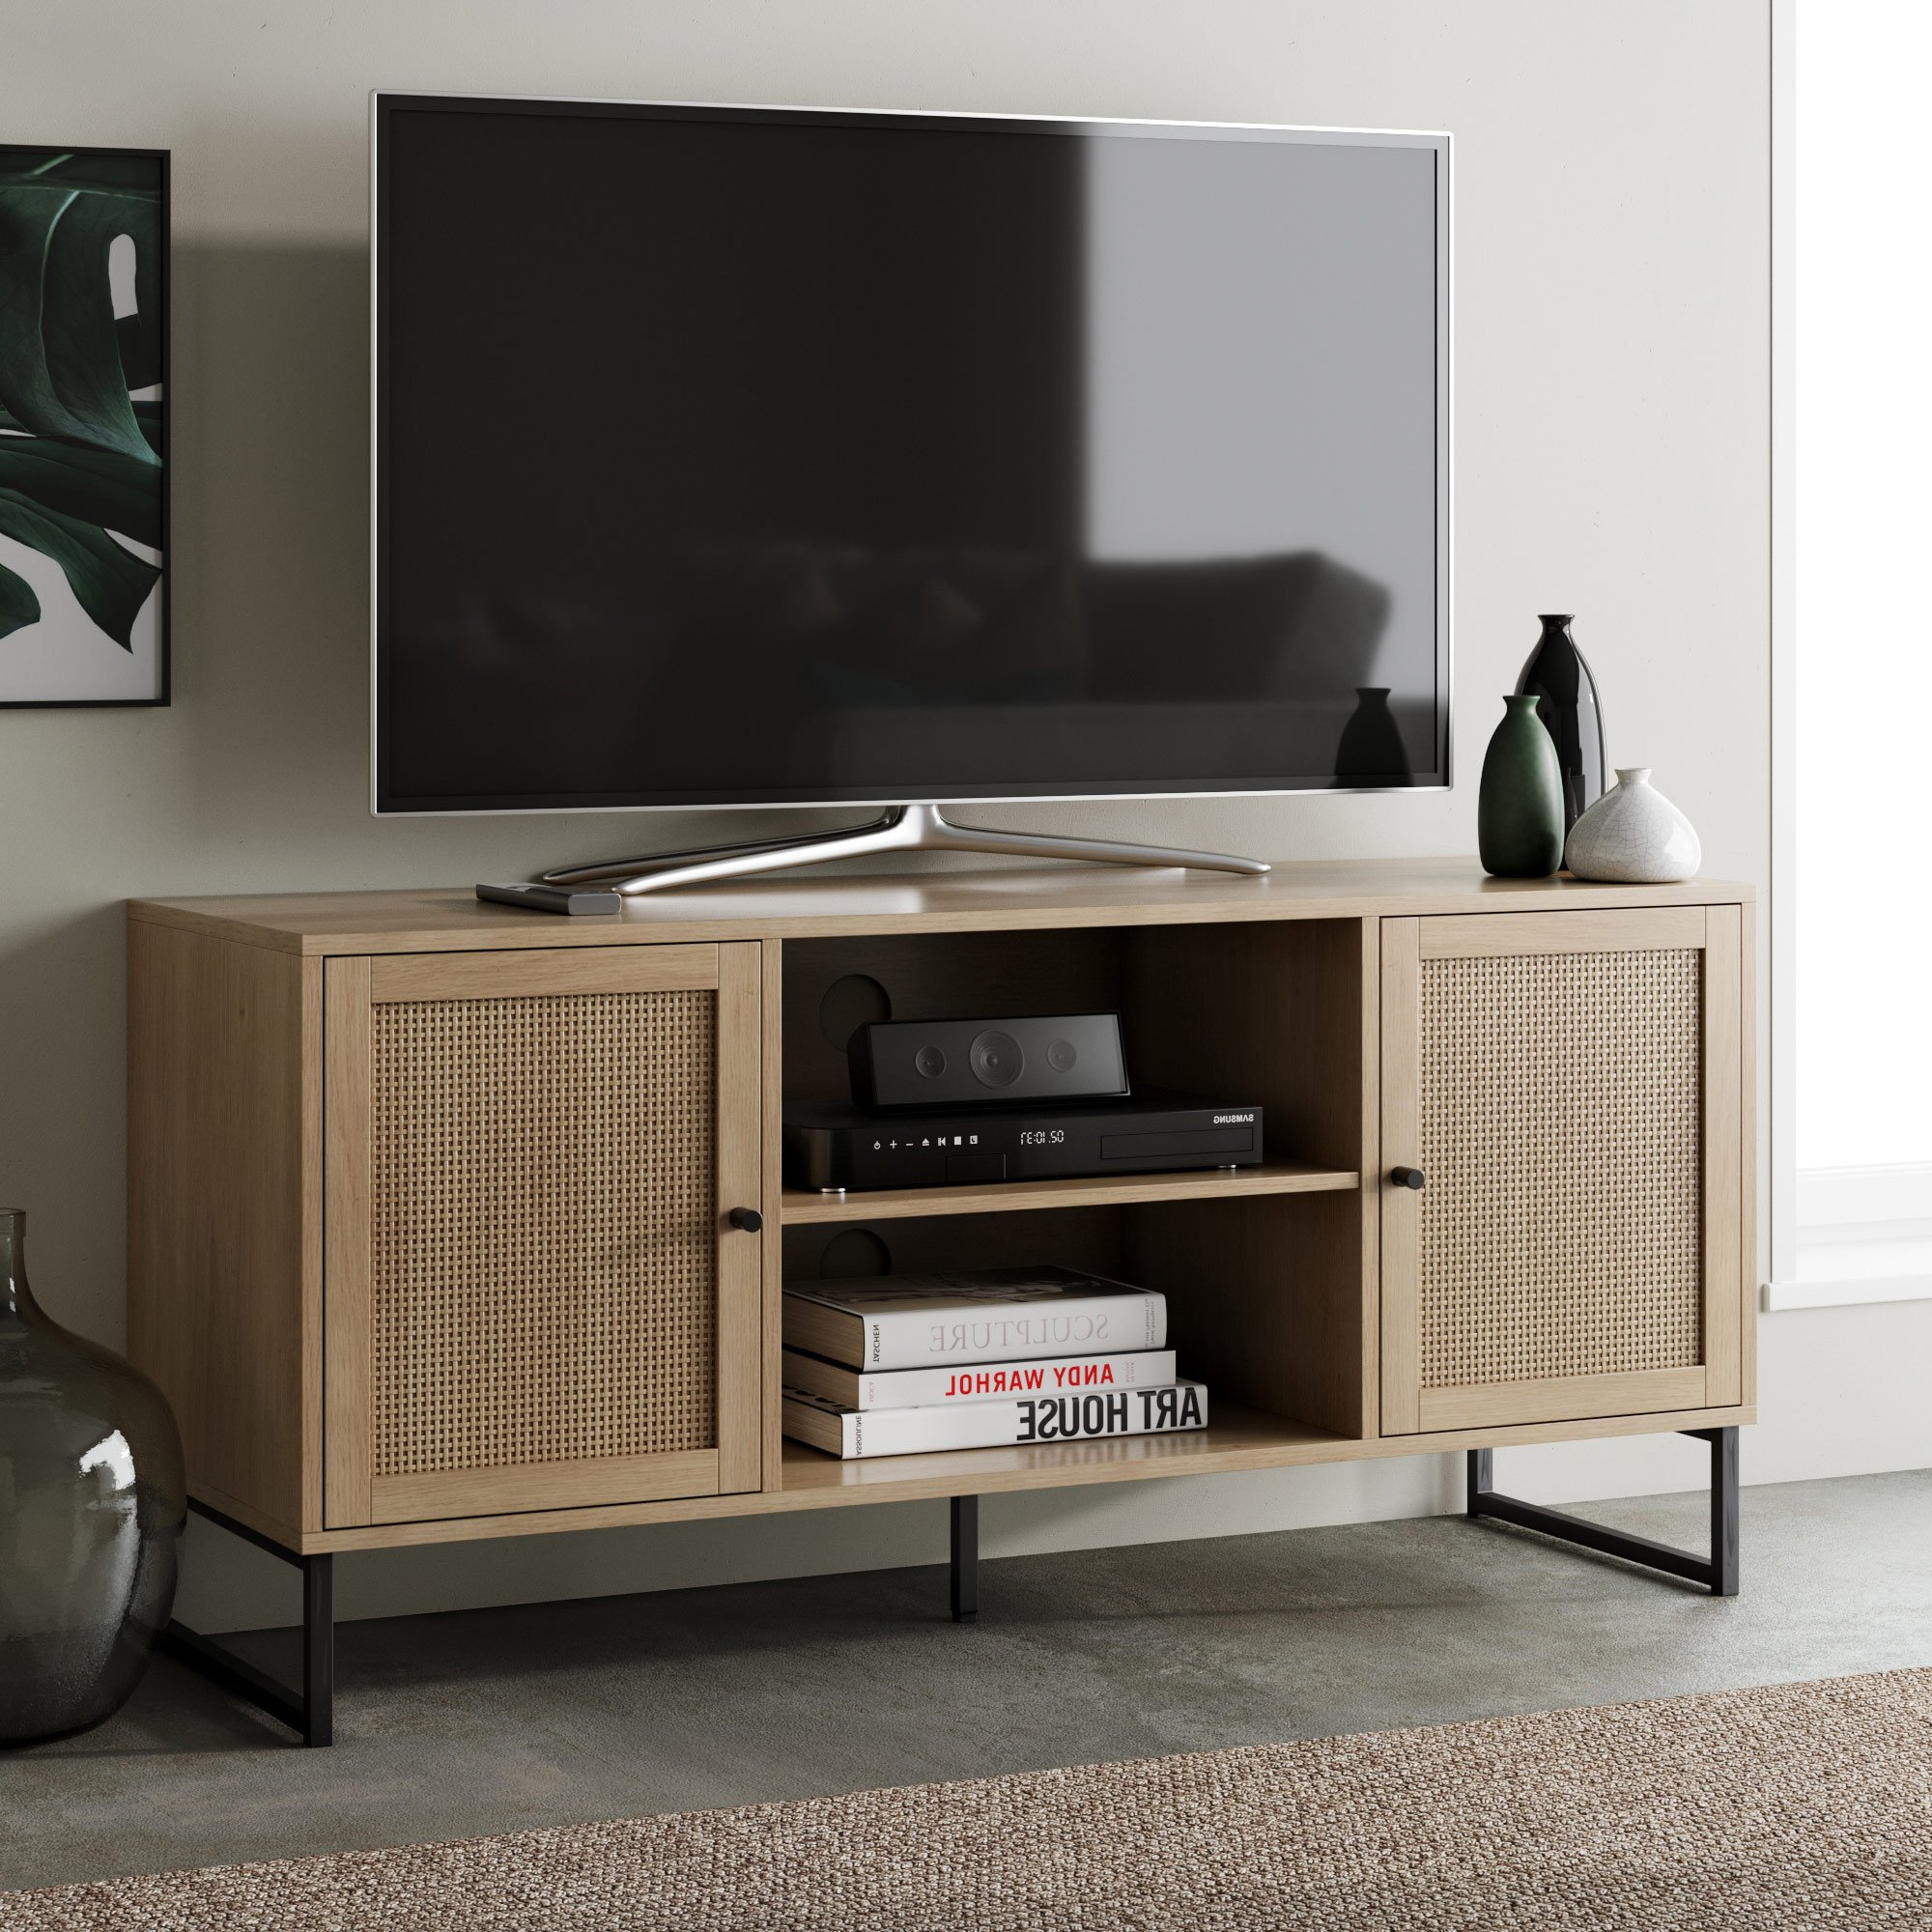 Nathan James Mina Modern Tv Stand Entertainment Cabinet Inside 2017 Modern Black Floor Glass Tv Stands With Mount (View 9 of 10)